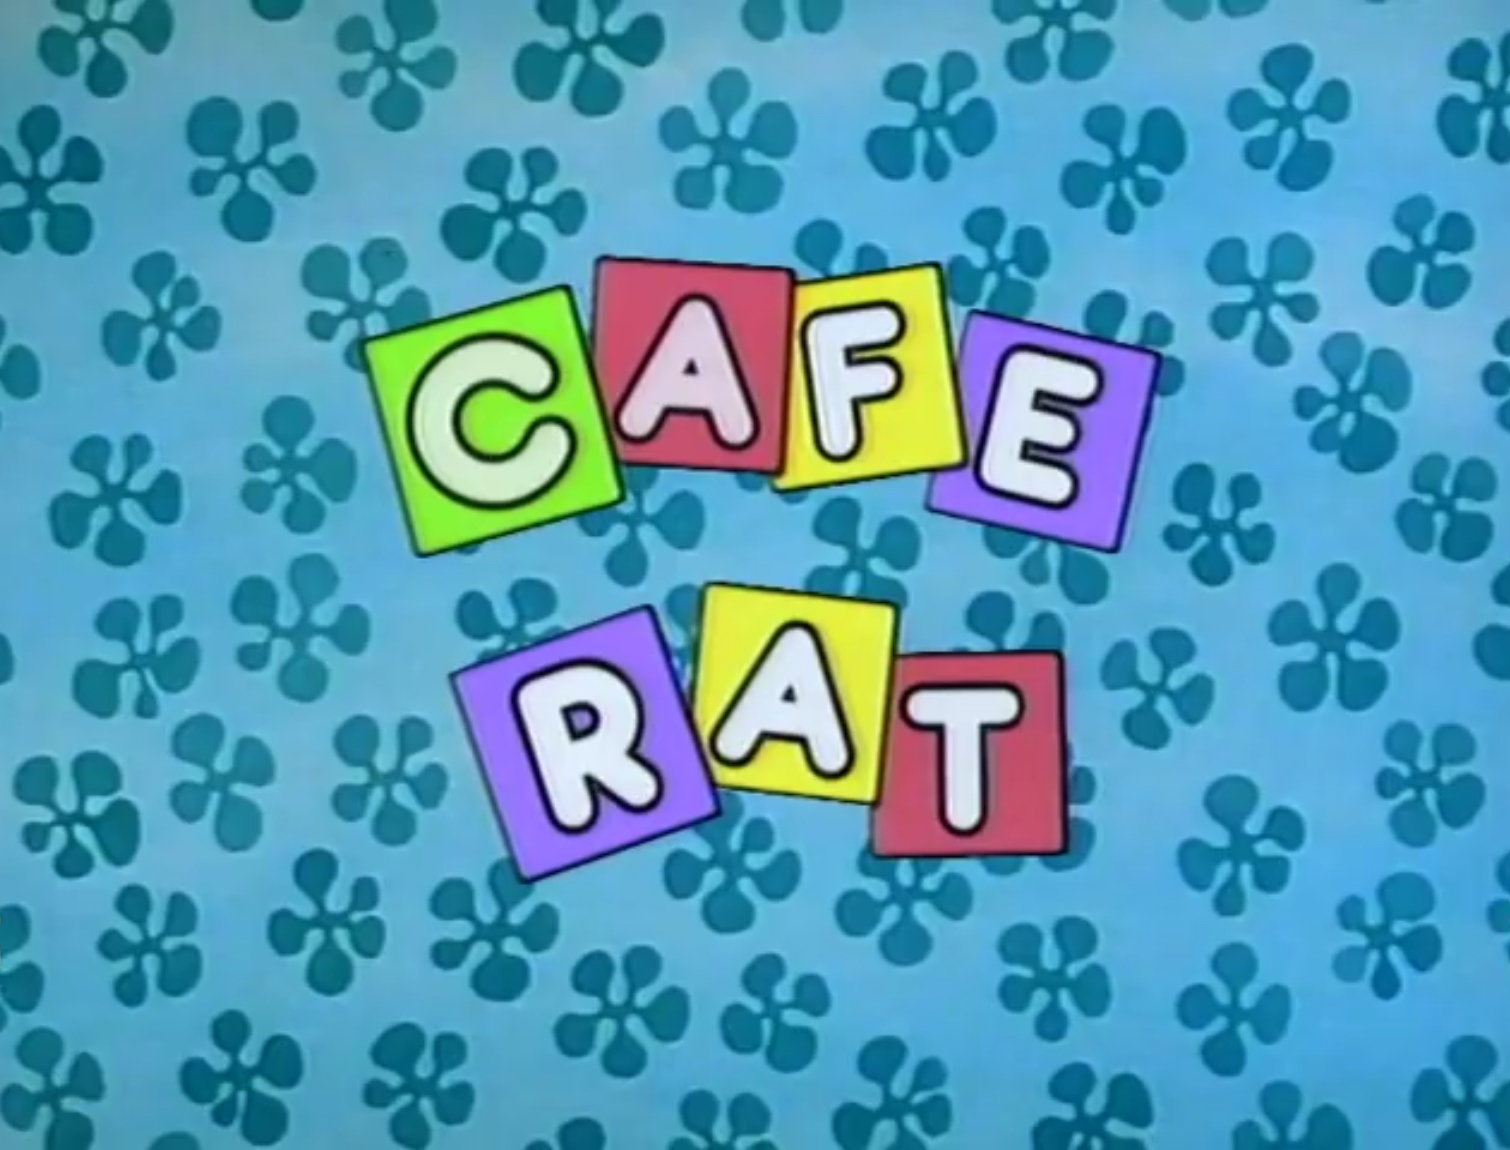 Cafe Rat/Gallery